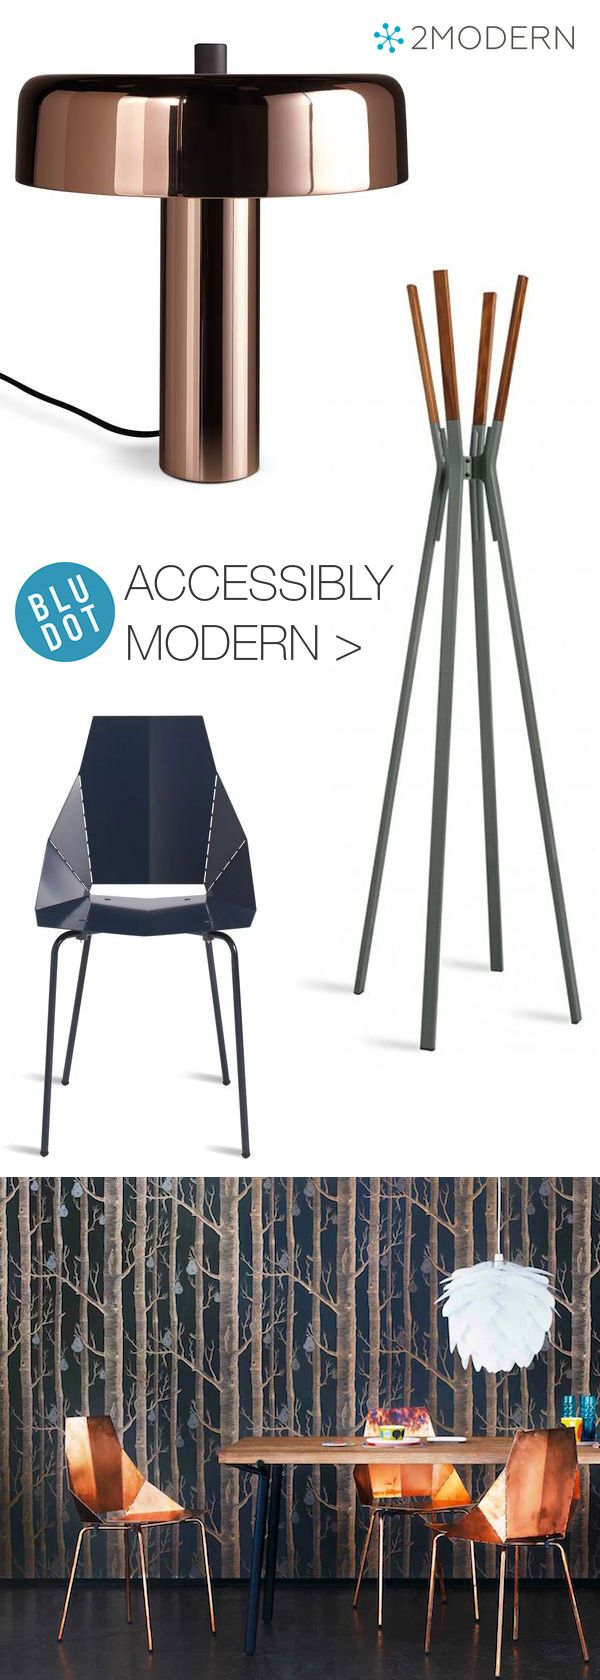 Stylish Modern Design At Accessible Prices Is A Blu Dot Commitment. Our Blu  Dot Sale Offers Off On All Modern Furniture, Lighting And Decor.